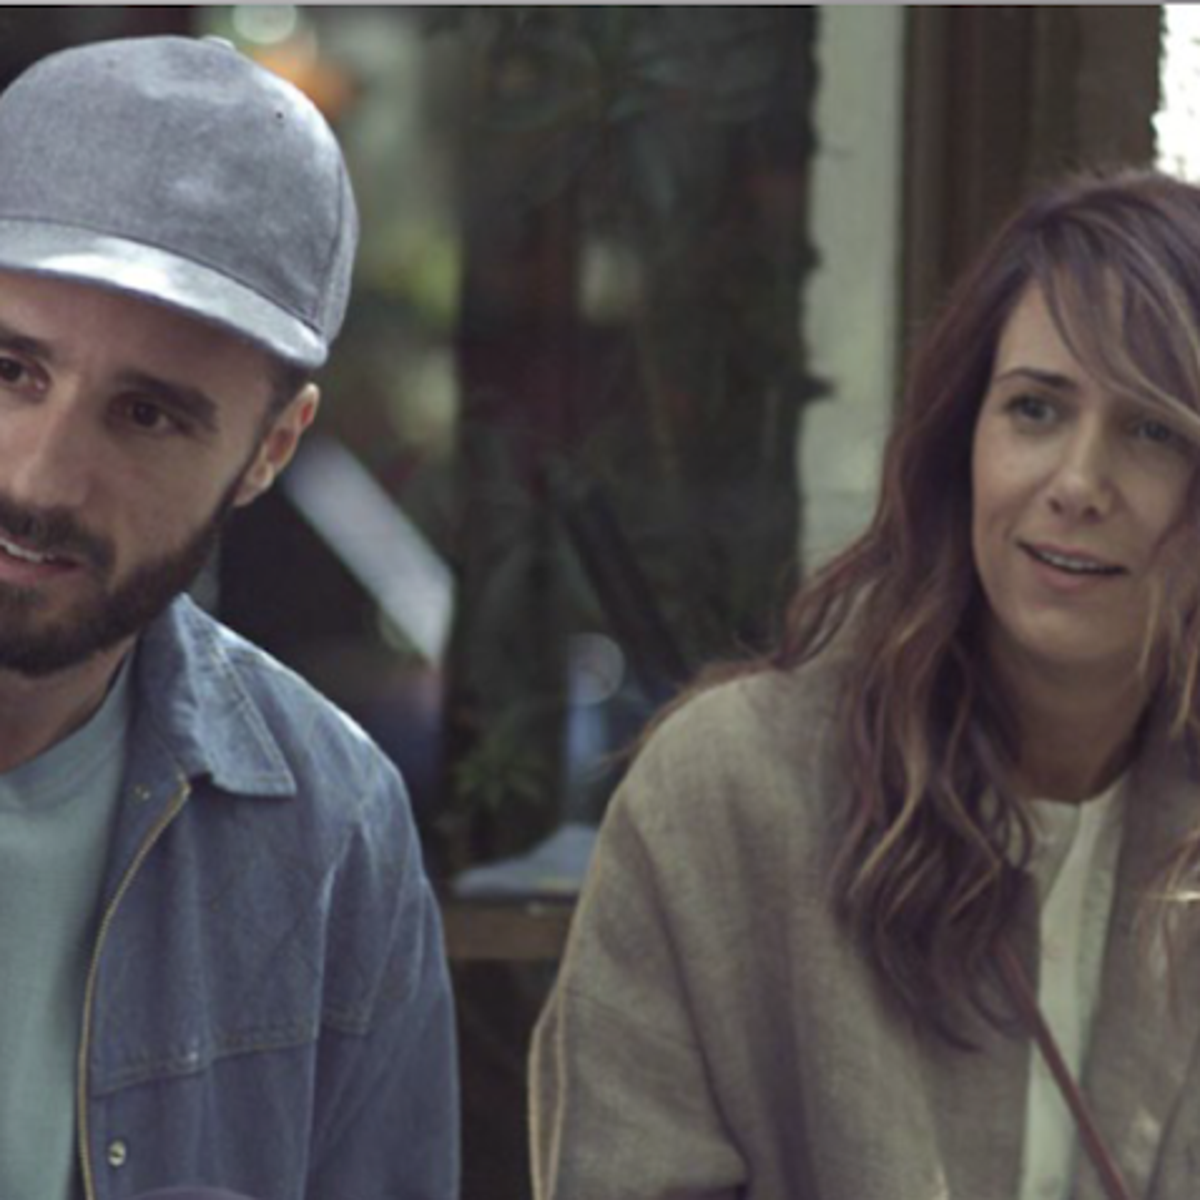 PHIL POTEMPA: Former 'SNL' TV funnylady Kristen Wiig in Chicago for October  film screening | OffBeat with Phil Potempa